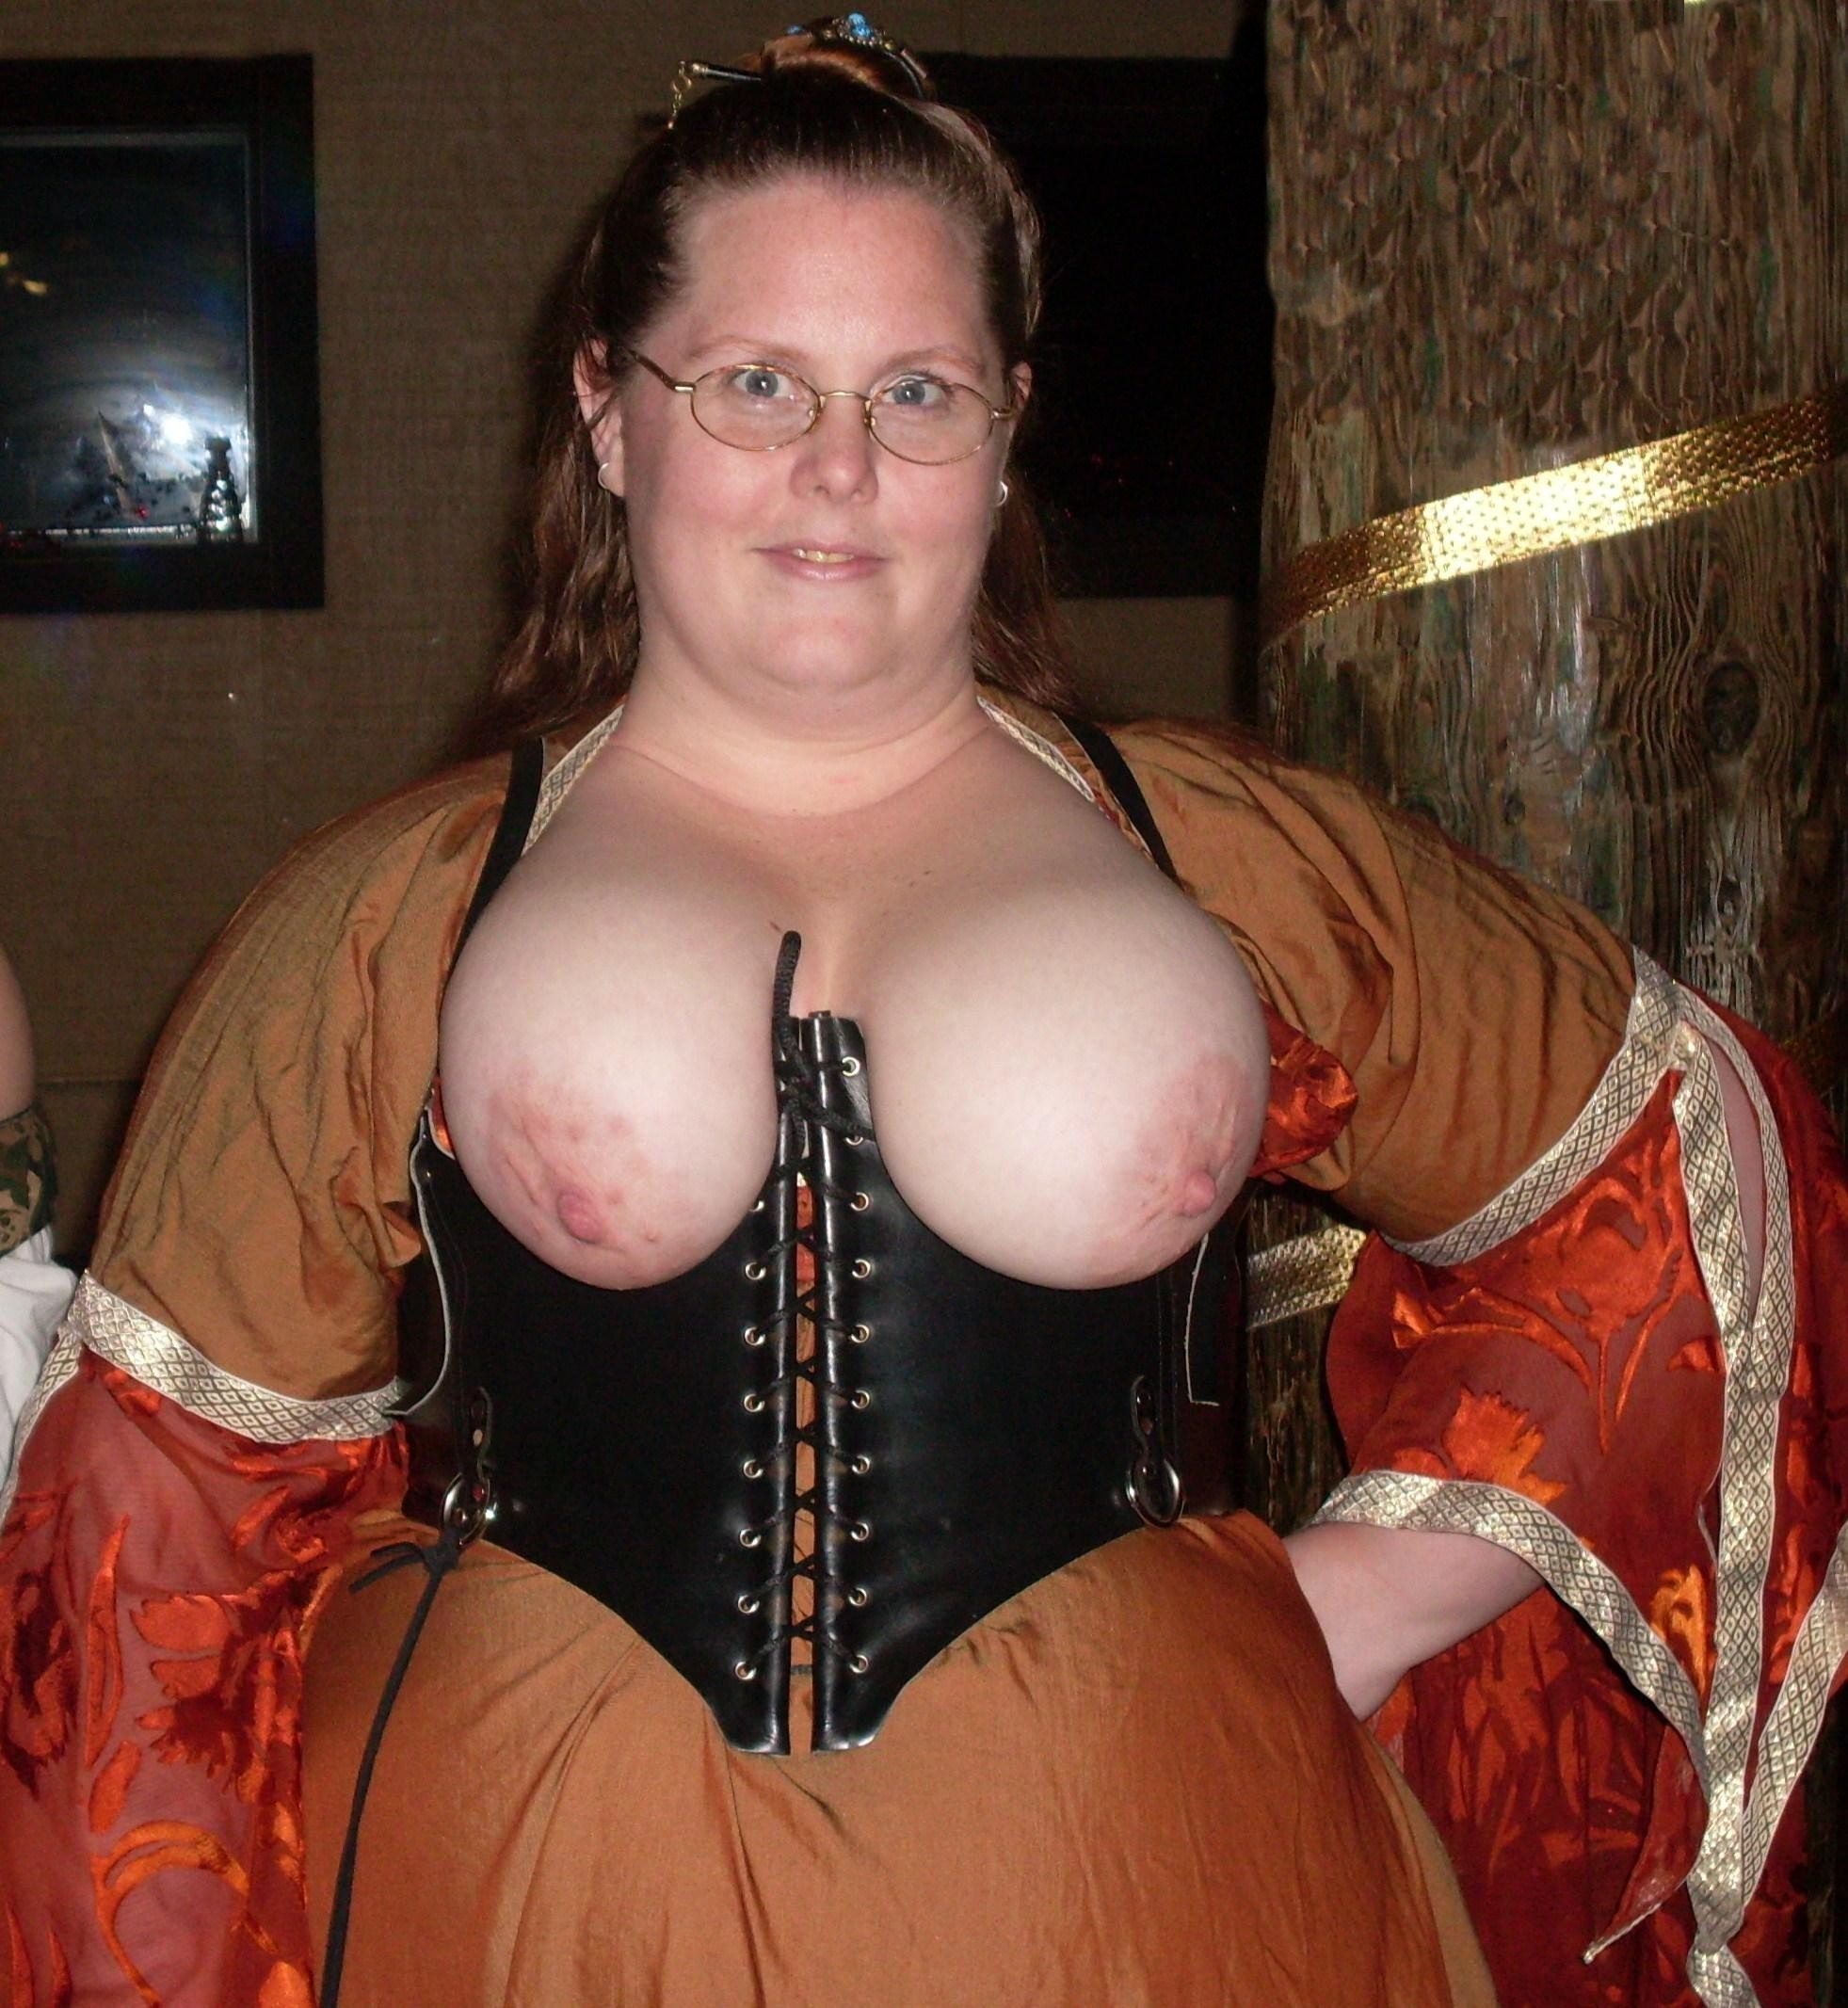 renaissance festival cleavage some others too 2